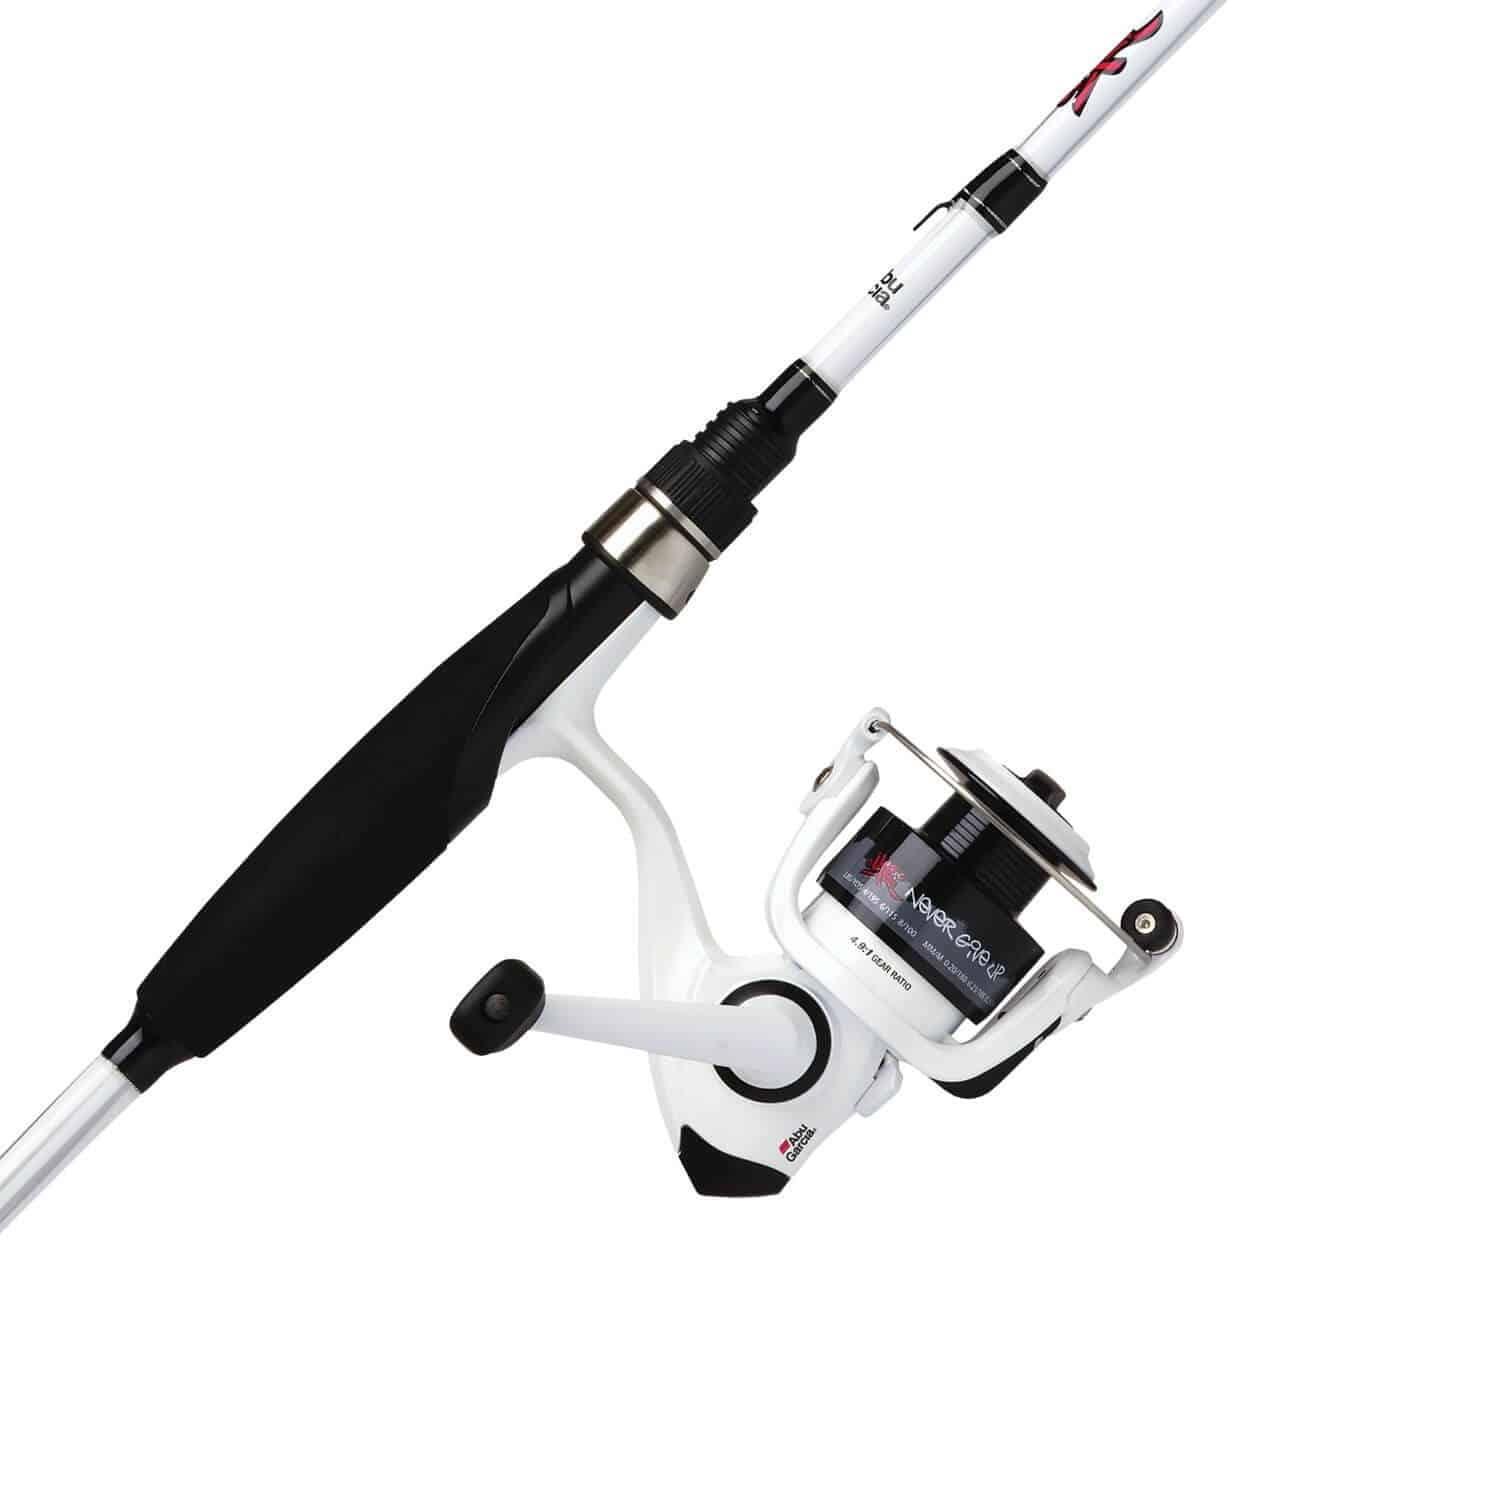 Spinning reel fishing rod for Fishing rod reel